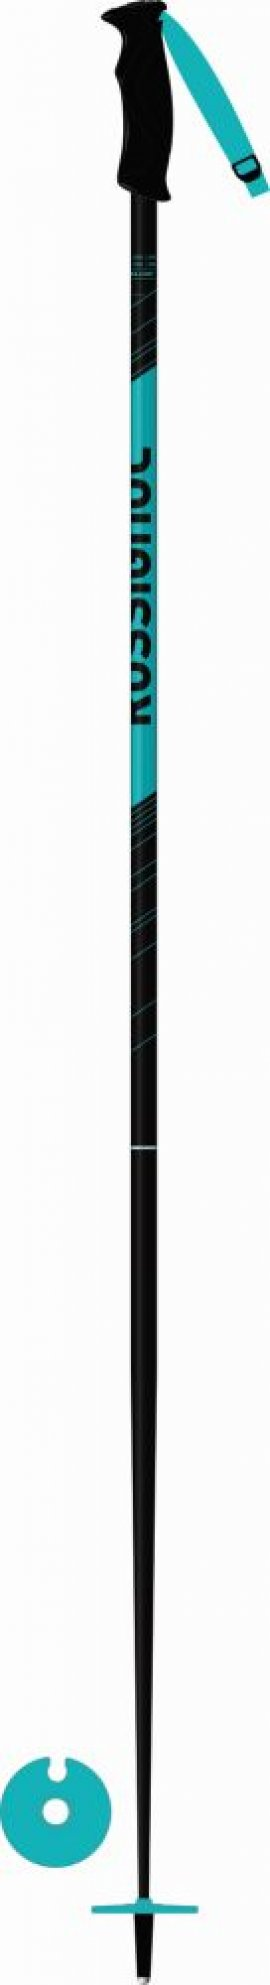 ROSSIGNOL ELECTRA LIGHT, black